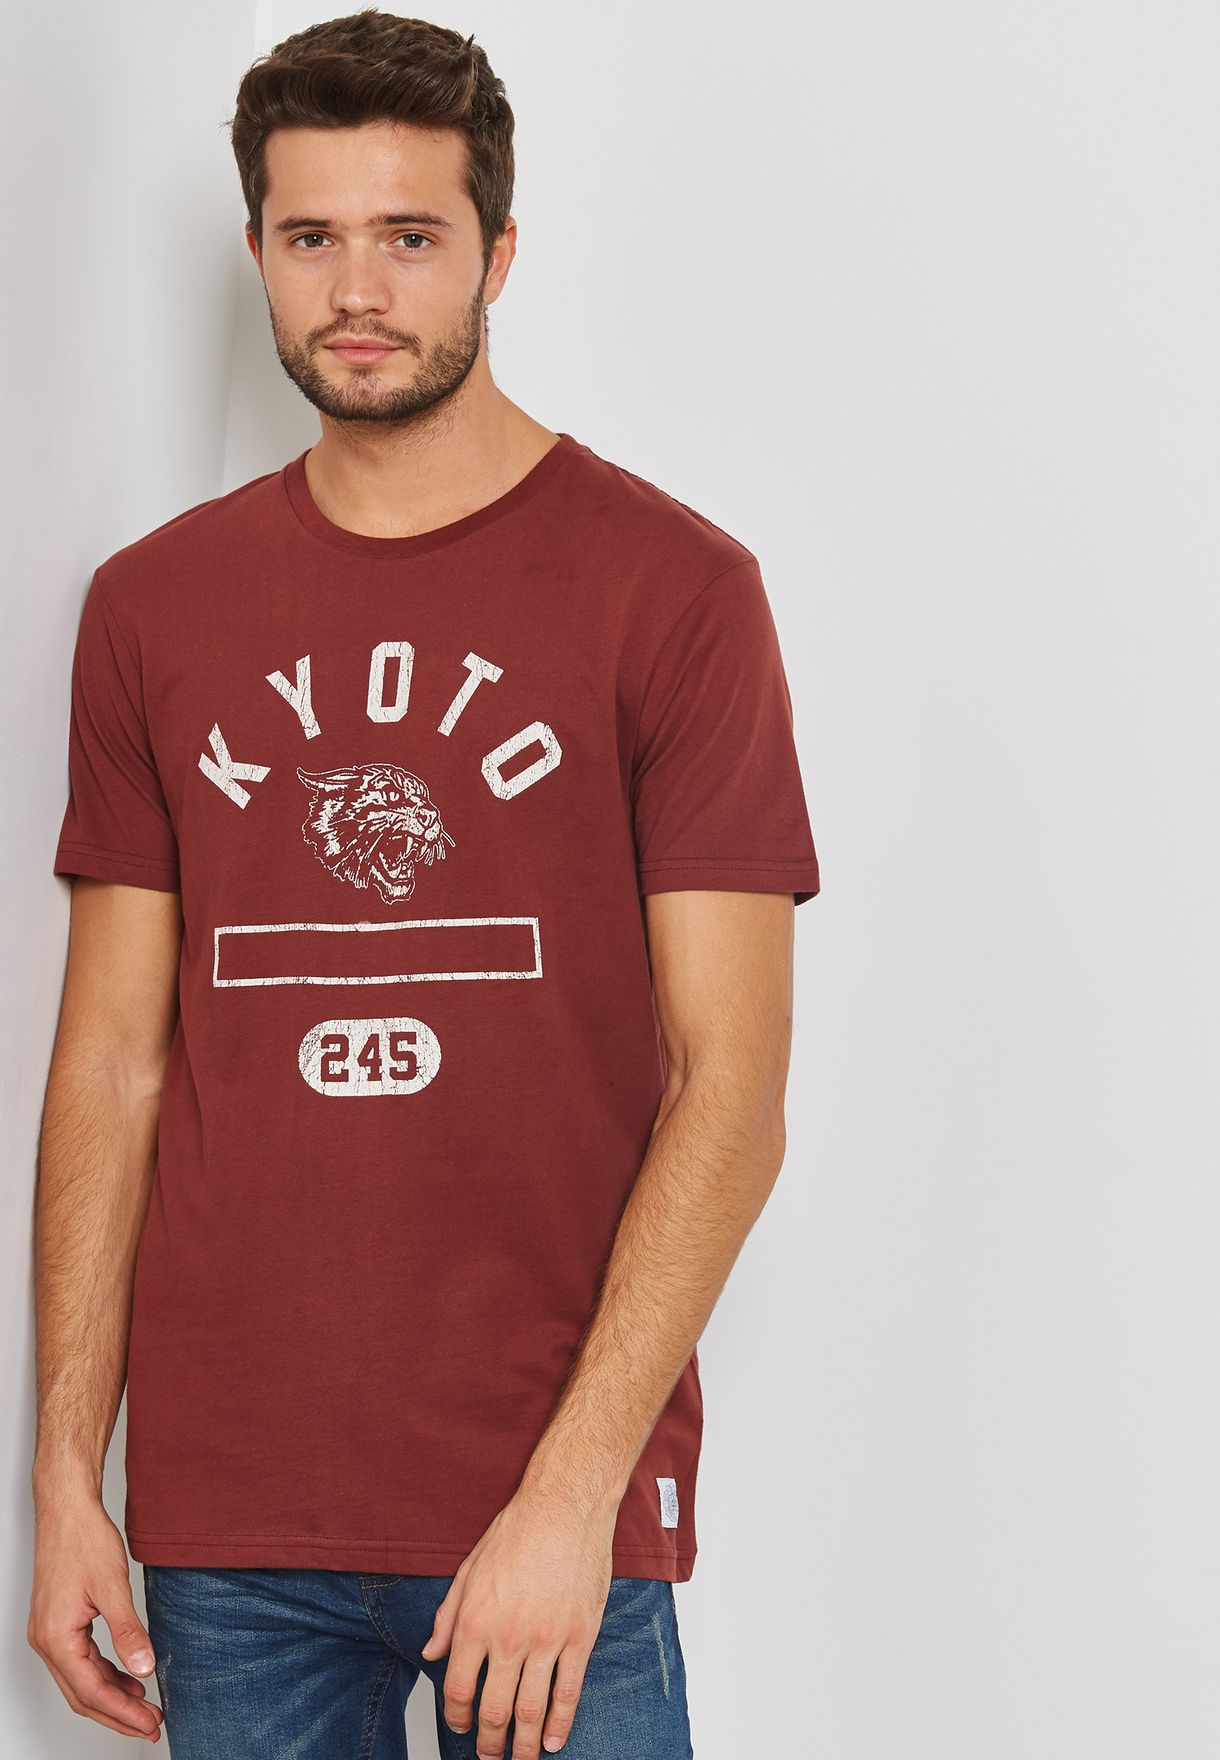 2f8d70a0 Shop Cotton On red Tbar T-Shirt 363020-191 for Men in Bahrain ...